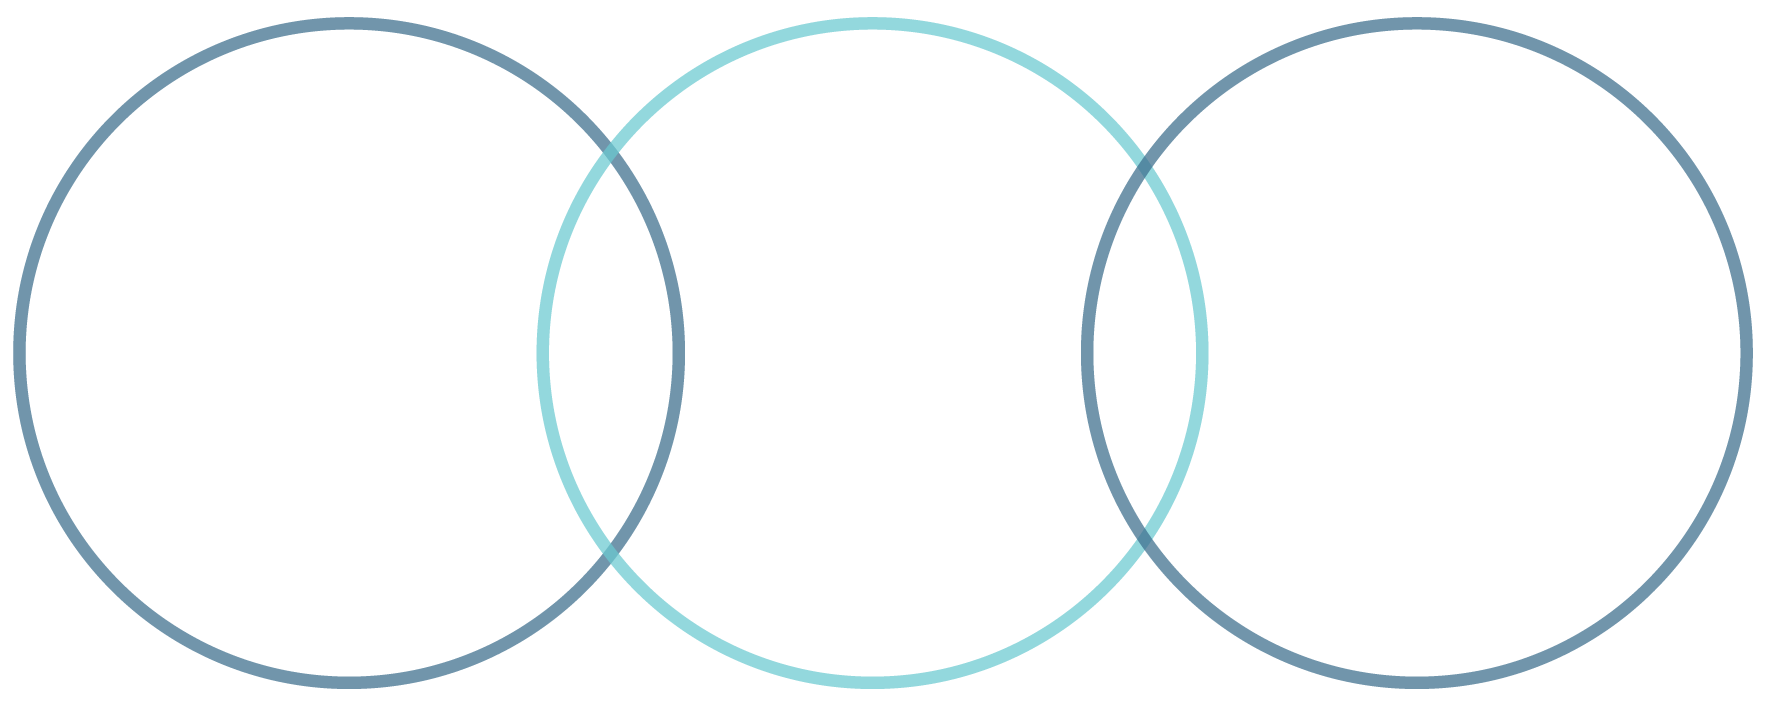 Ivy Slater - Three Circles Outlined 1-20.png